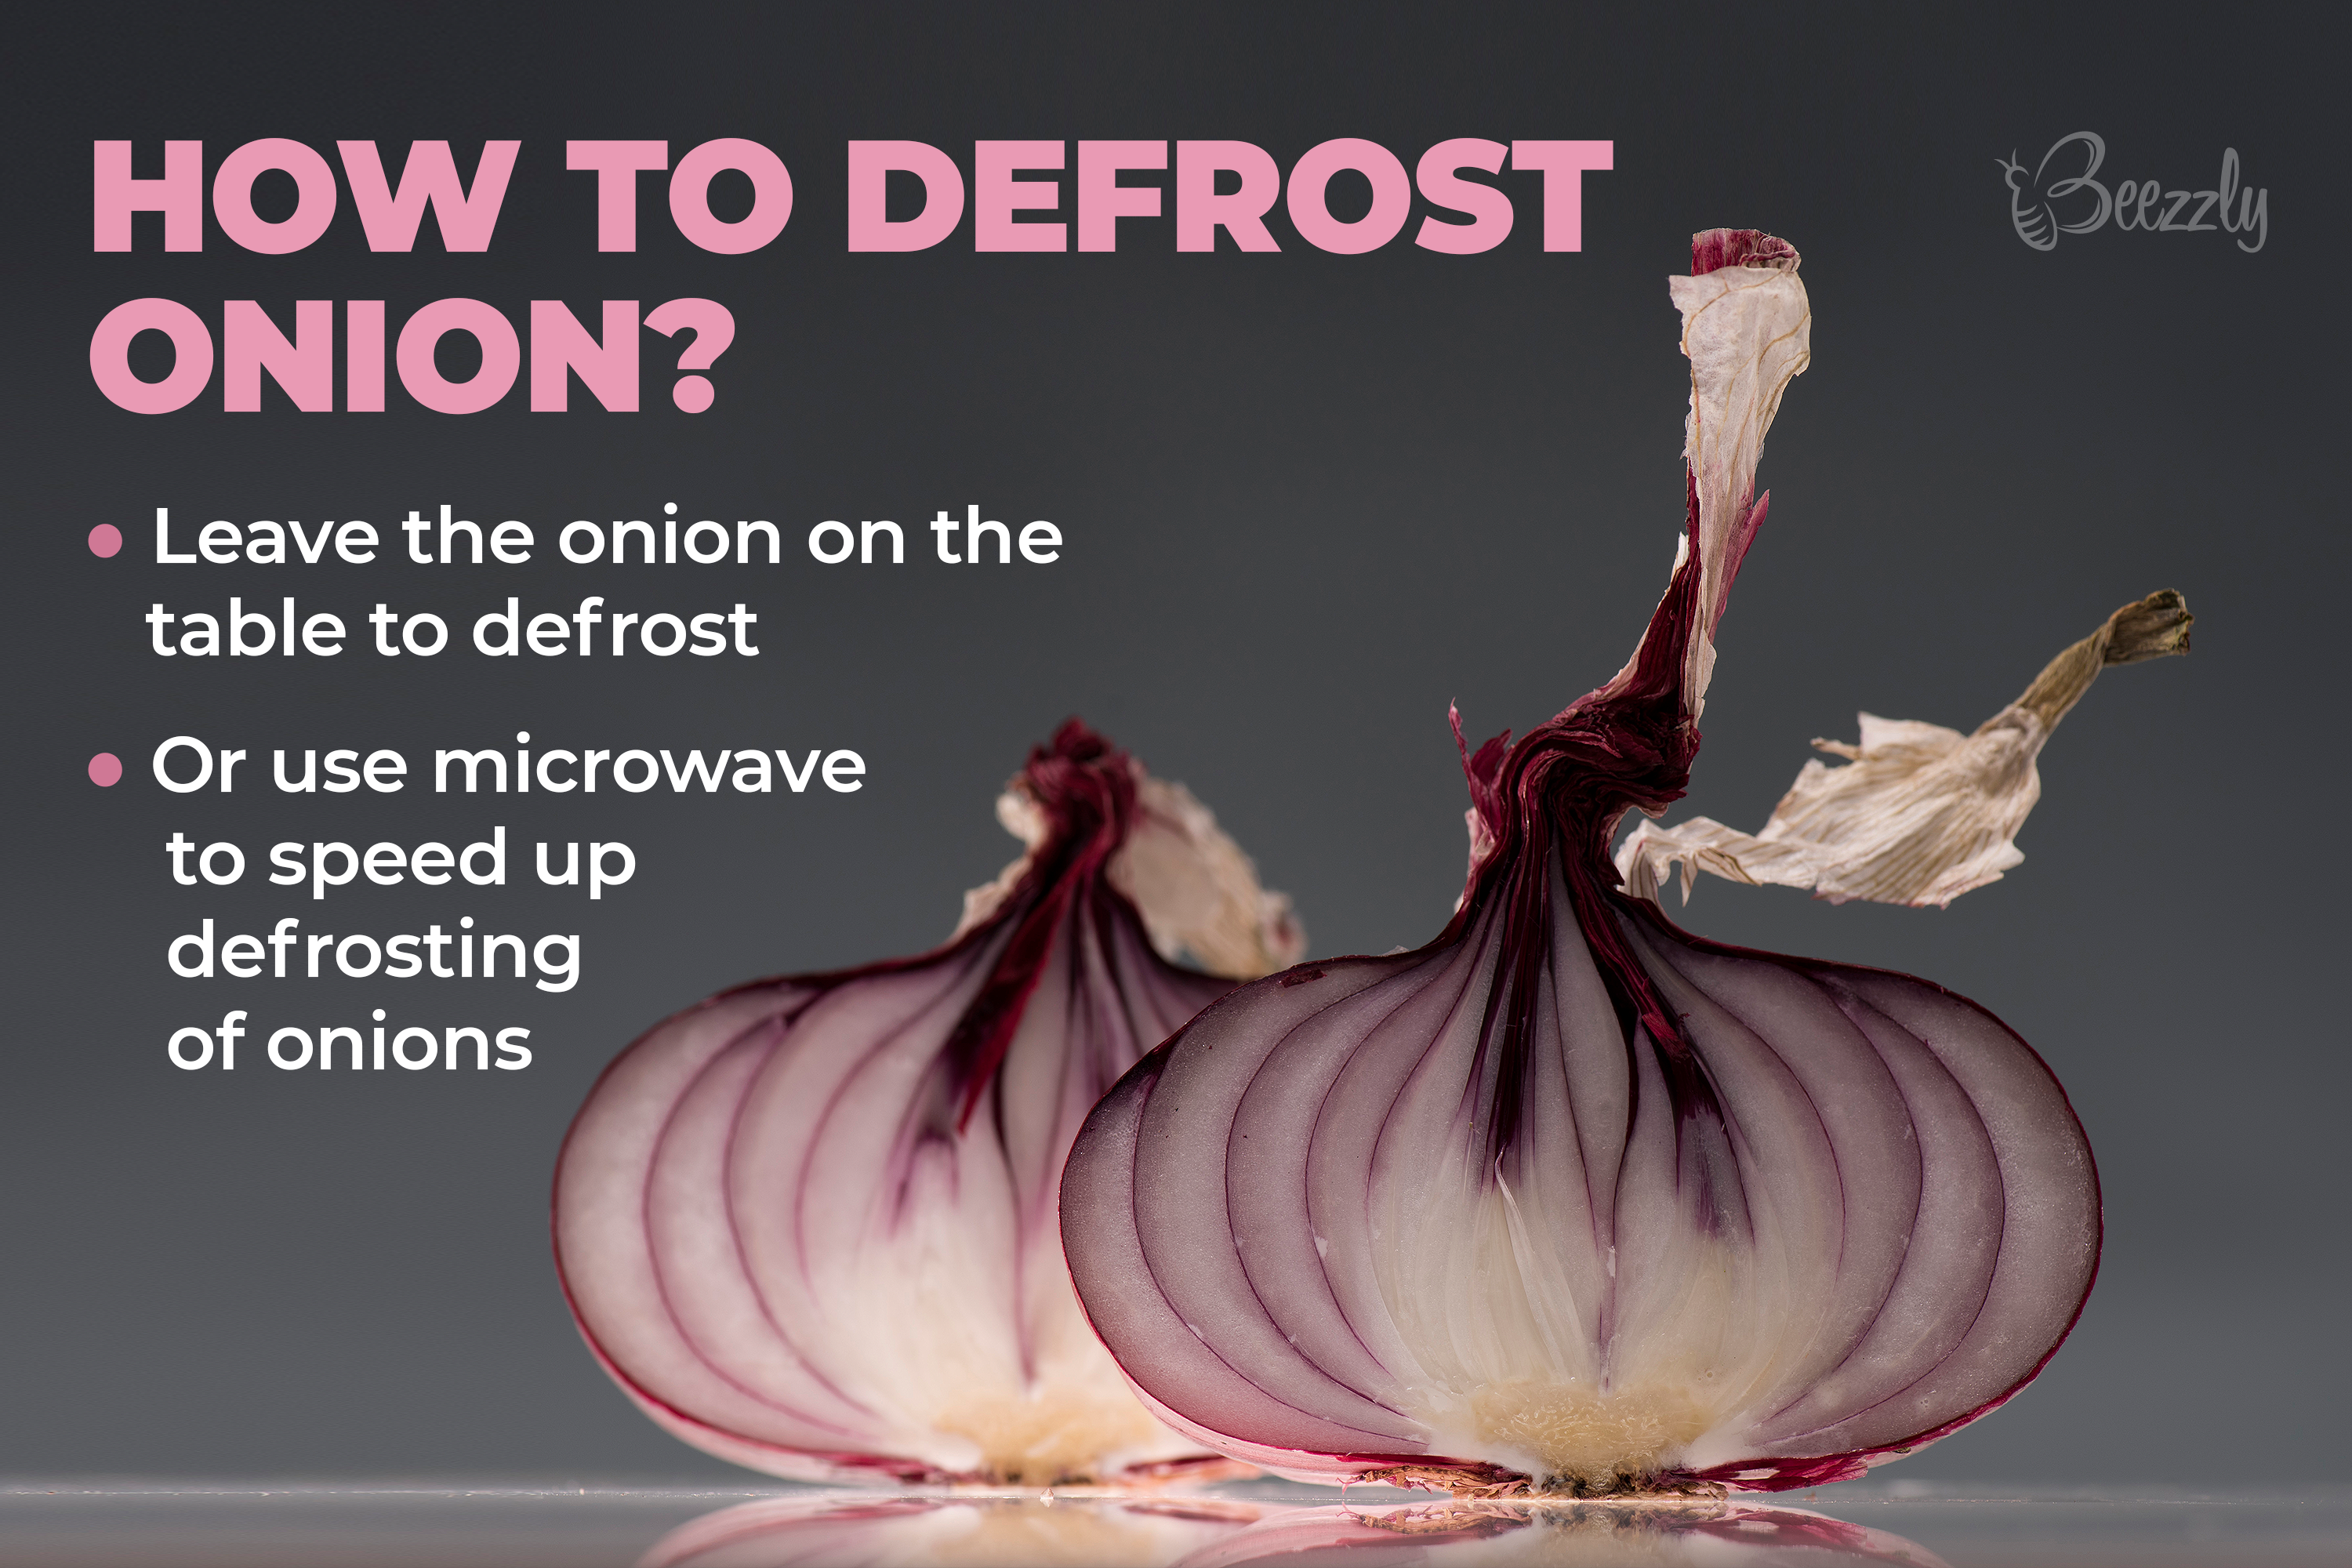 How to defrost onion